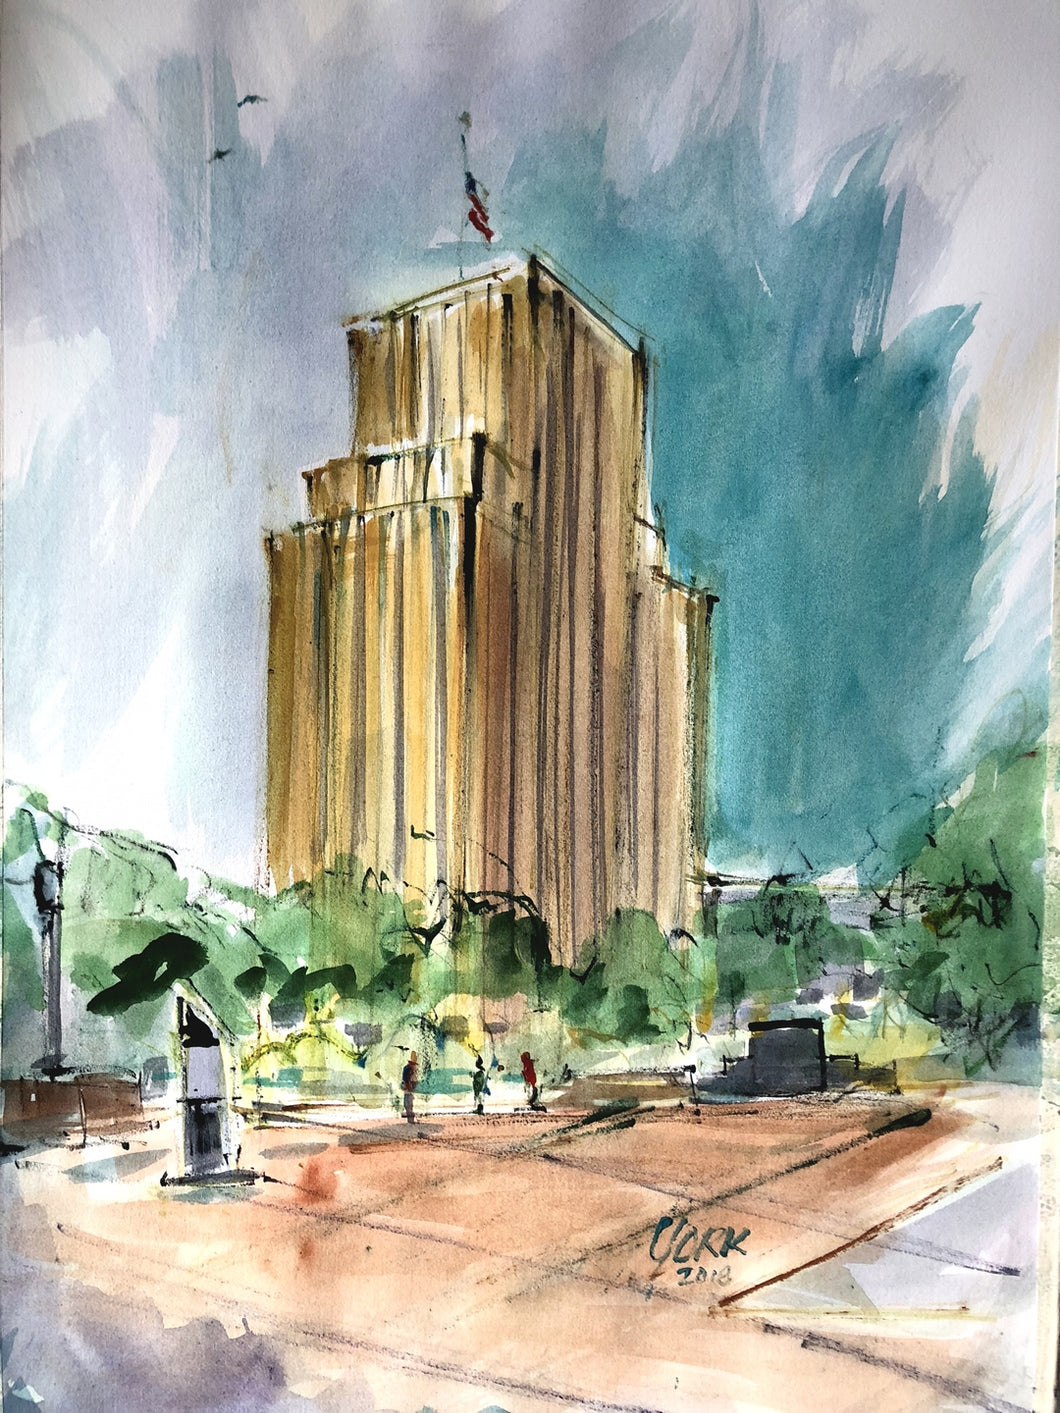 People's Petroleum Building, Texas Artist John York, Watercolor 12 x 18 inches